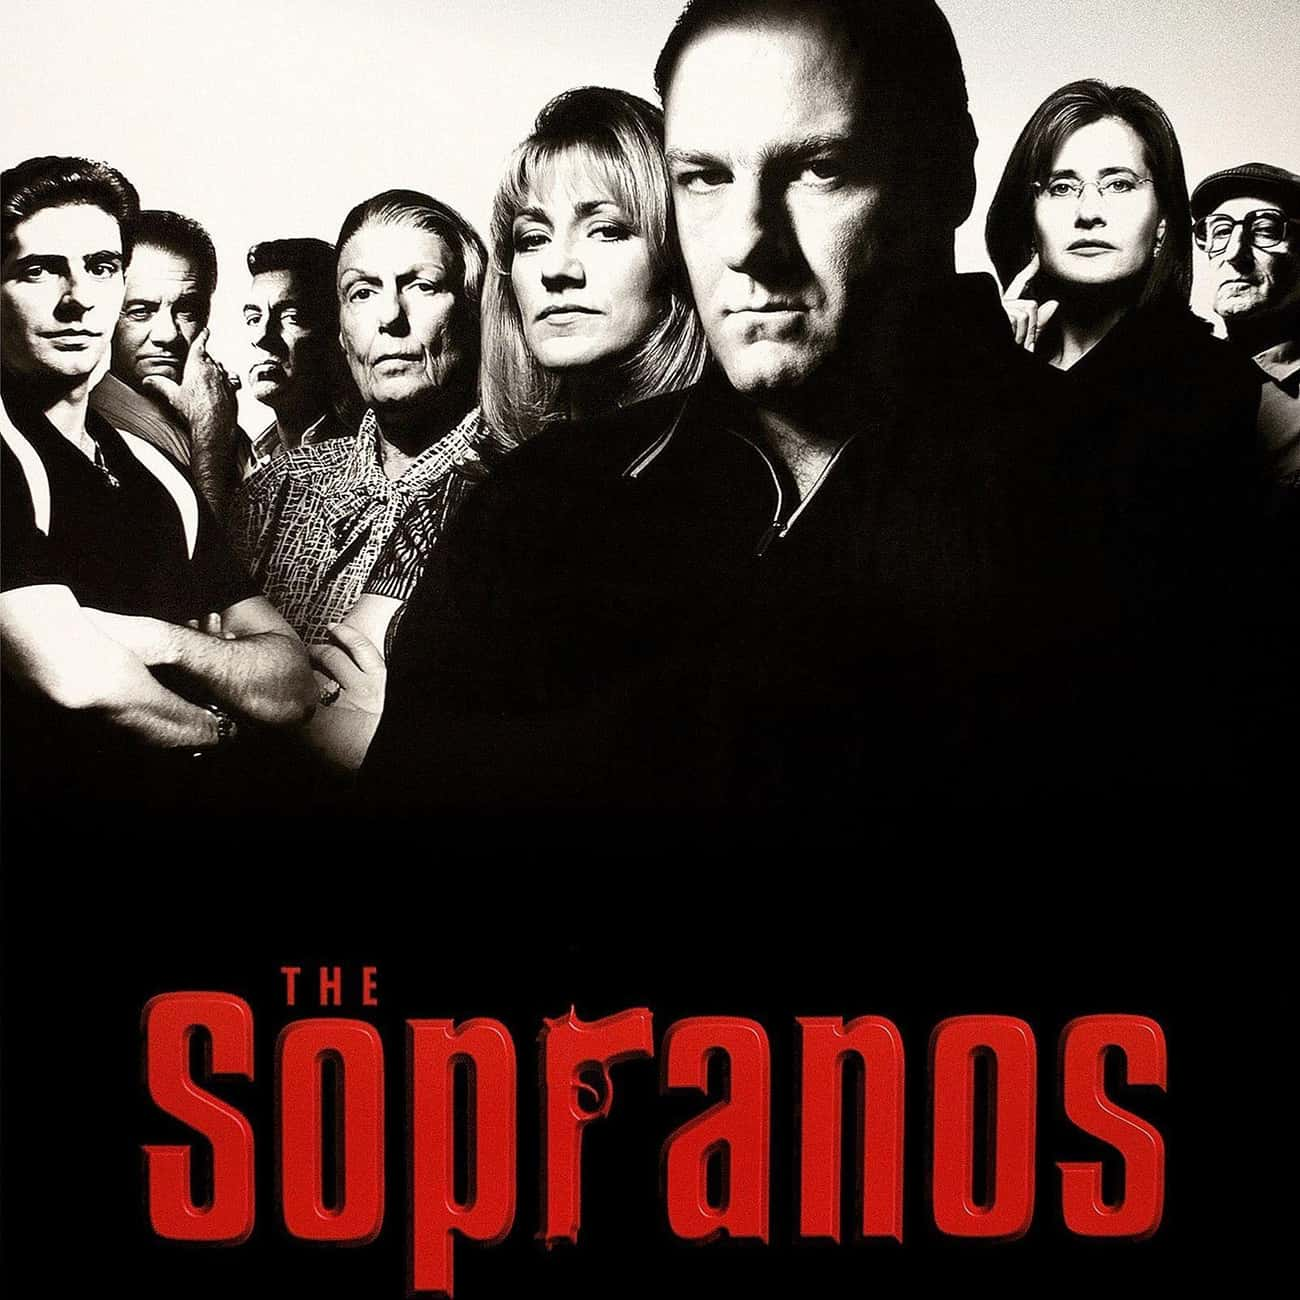 The Sopranos is listed (or ranked) 1 on the list What to Watch If You Love Goodfellas